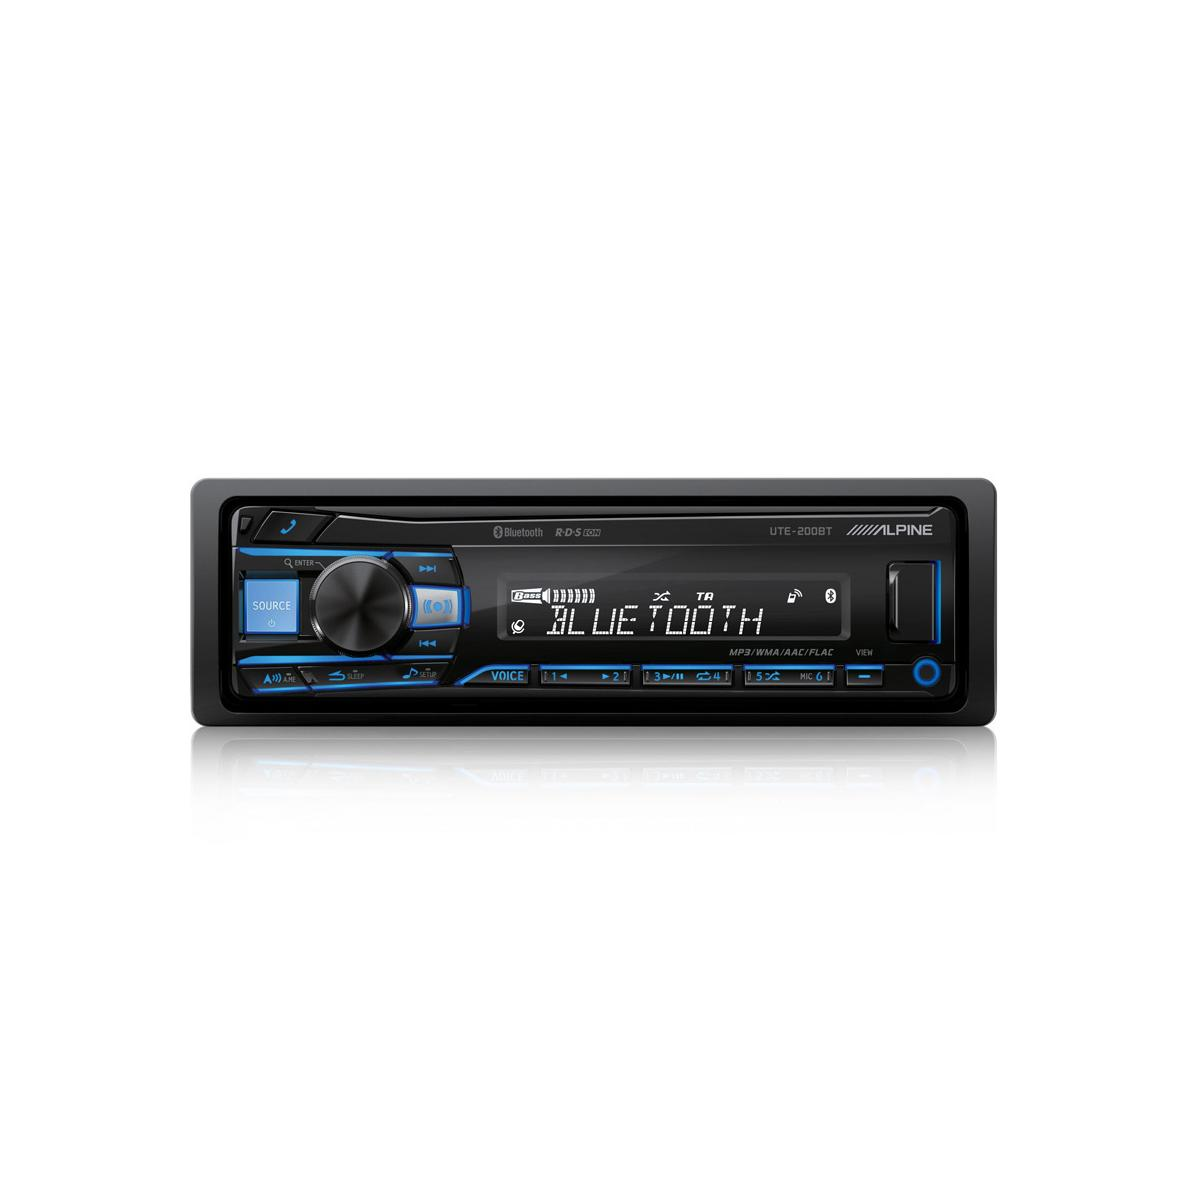 Mechless Car Stereo Alpine Car Audio Systems UTE-200BT 1